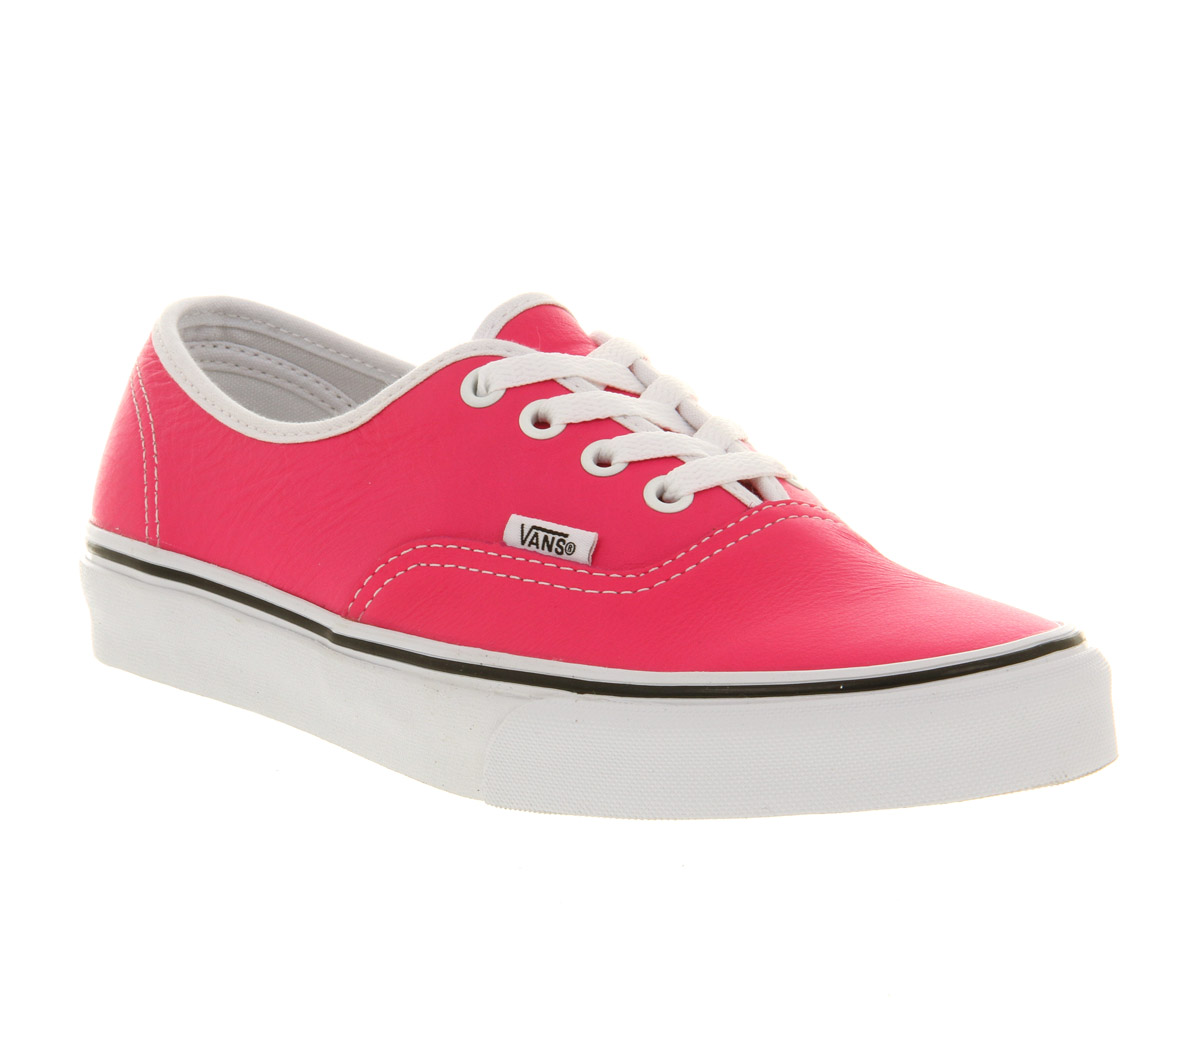 vans authentic leather neon pink trainers shoes ebay